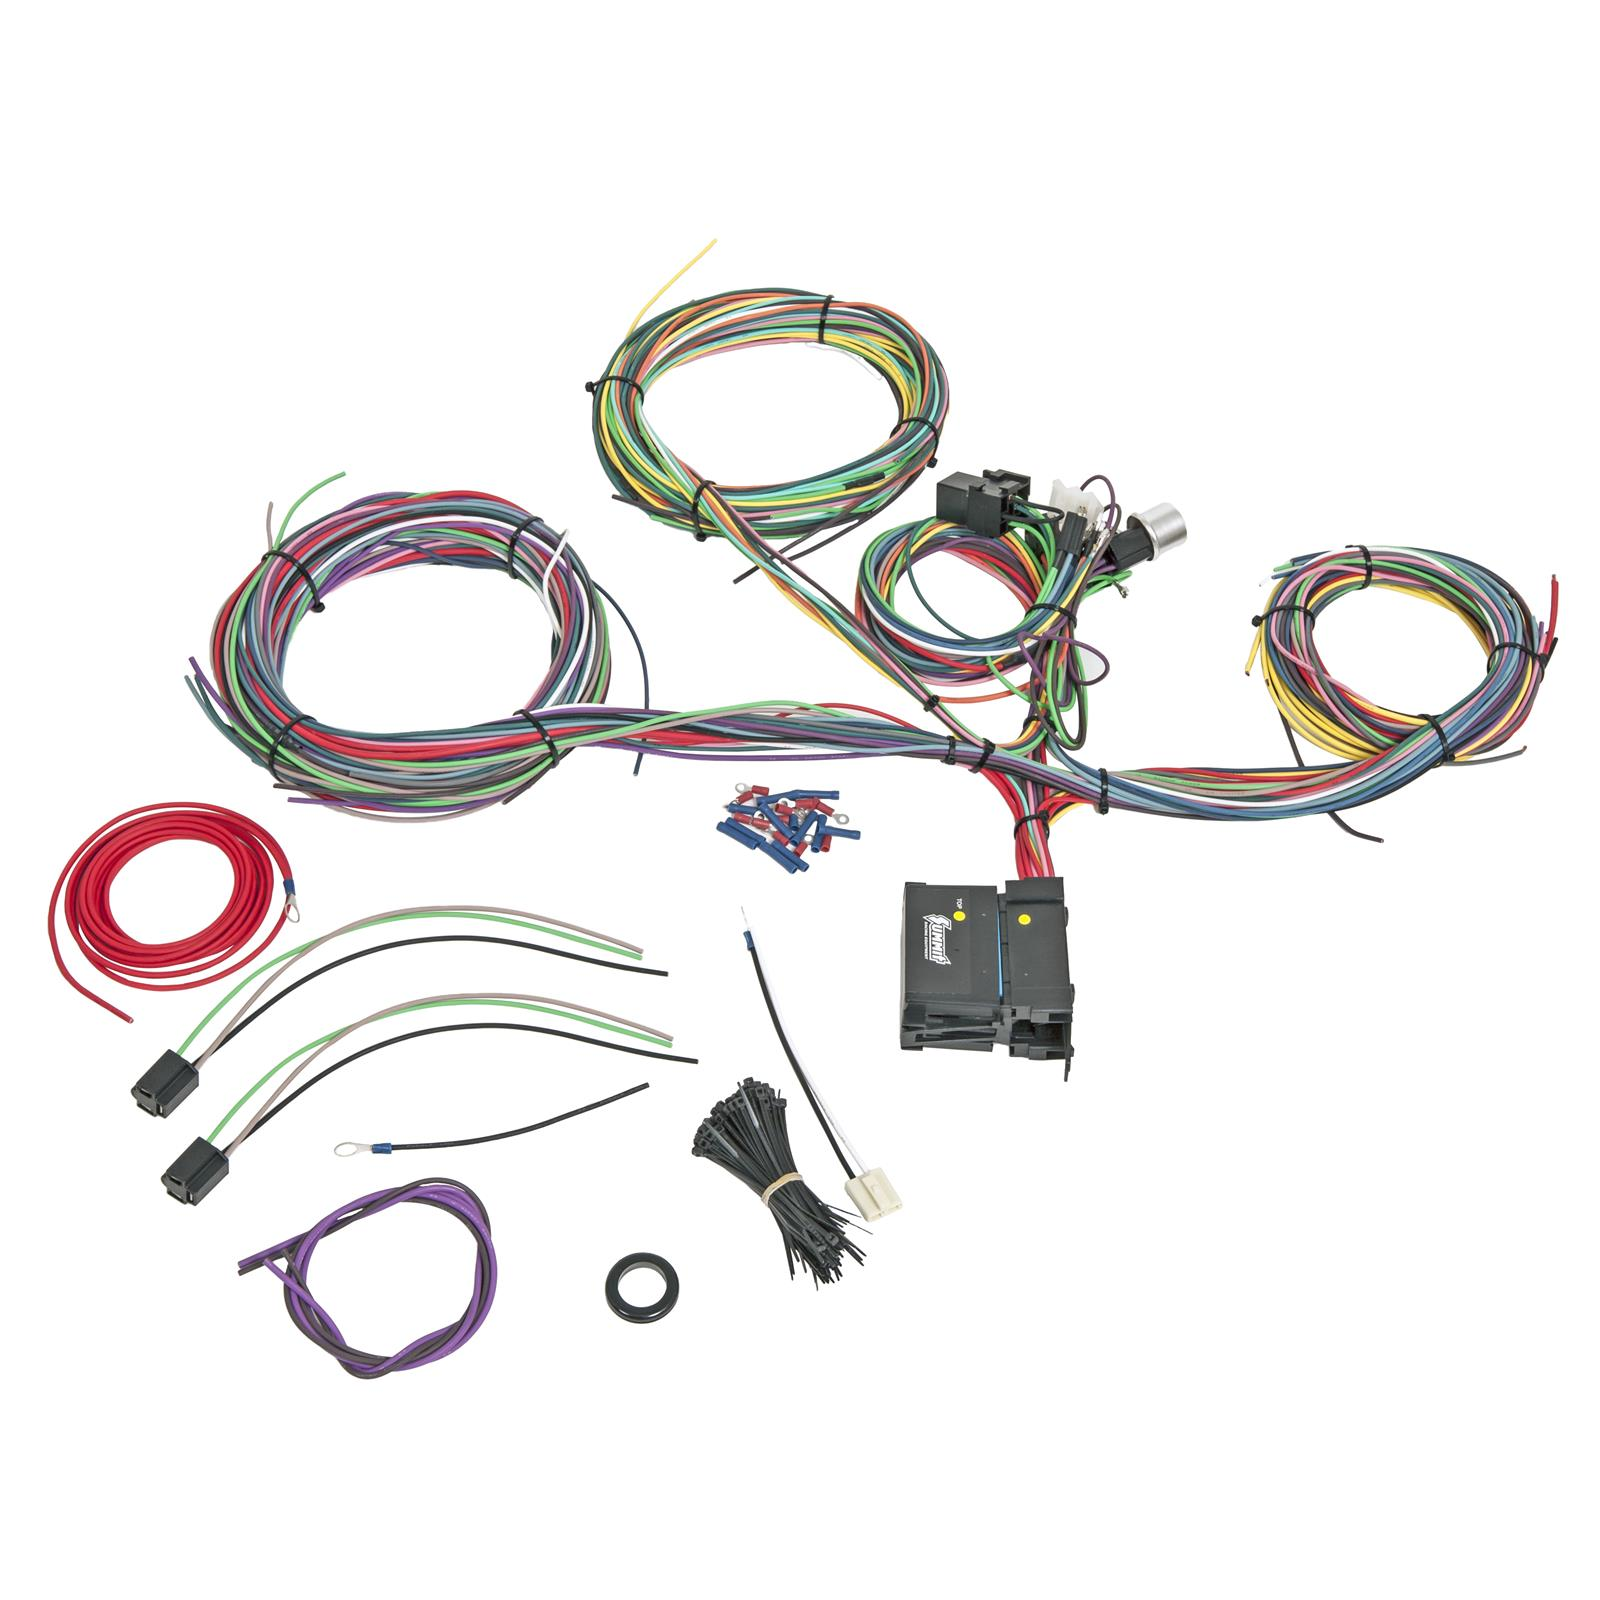 sum 890021_xl summit racing� 18 circuit universal wiring harnesses sum 890021 packard wiring harness at pacquiaovsvargaslive.co